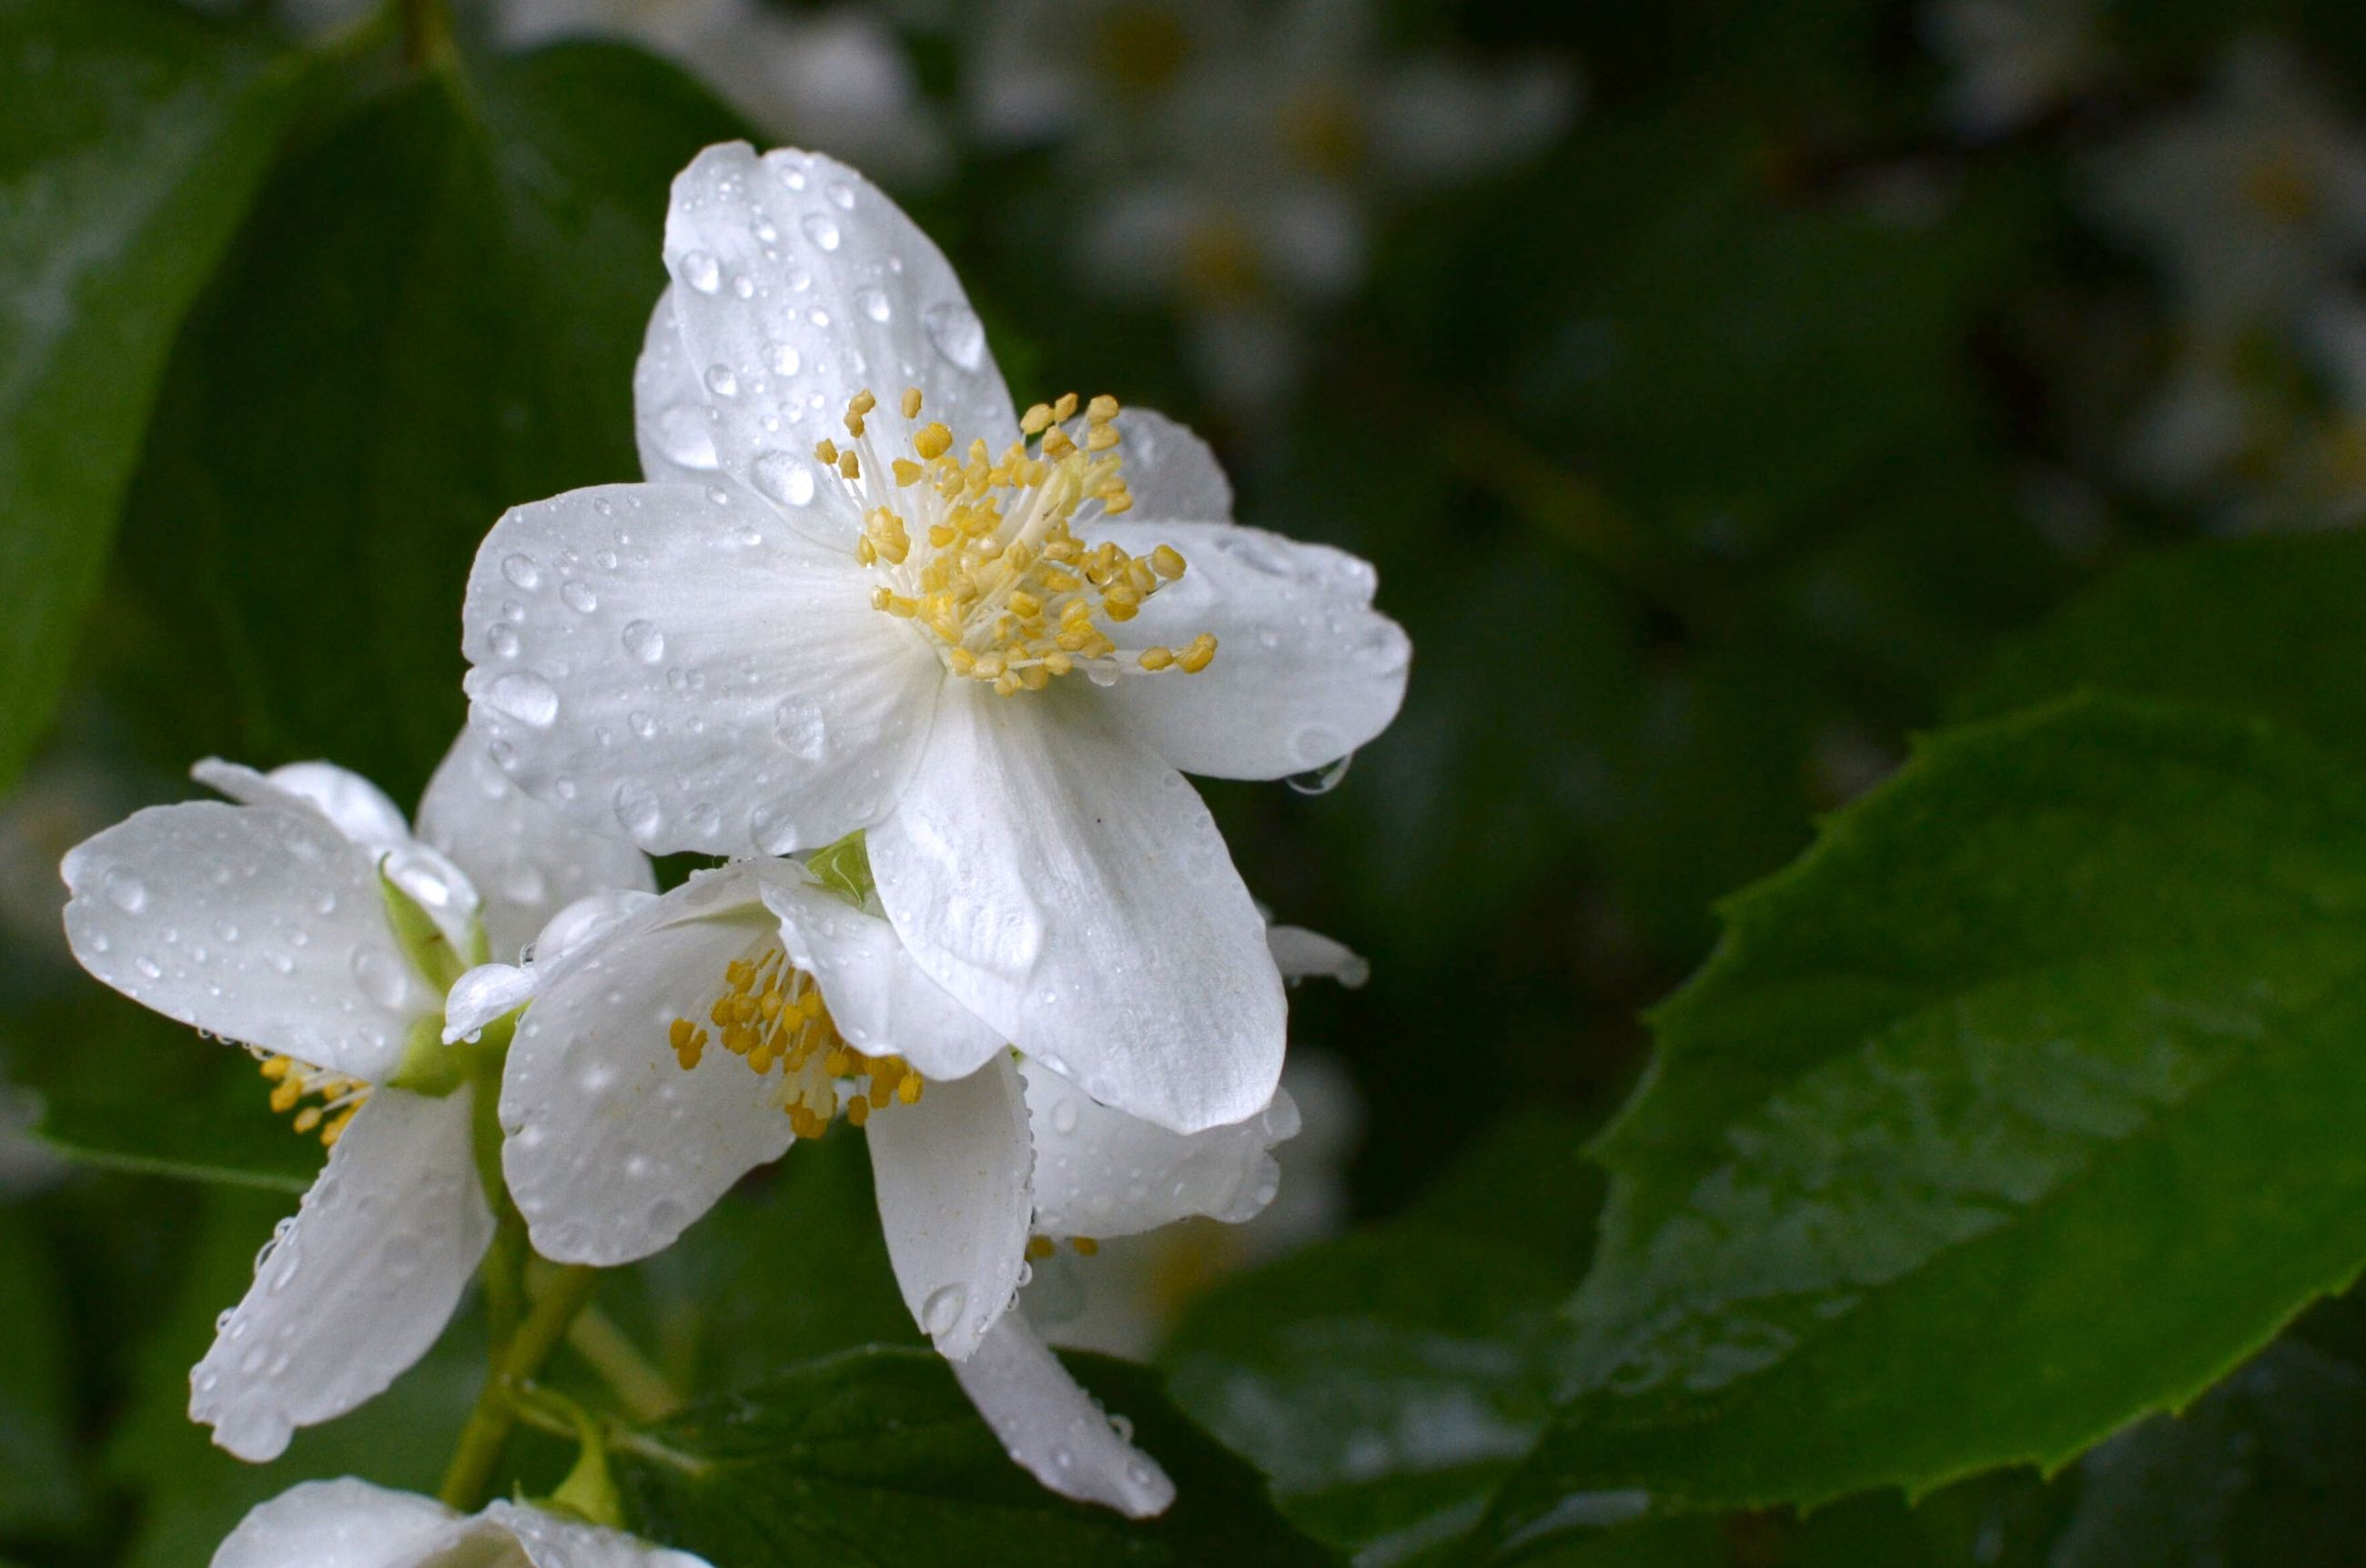 flower, freshness, petal, fragility, flower head, growth, white color, close-up, beauty in nature, drop, focus on foreground, wet, nature, blooming, water, plant, season, in bloom, pollen, dew